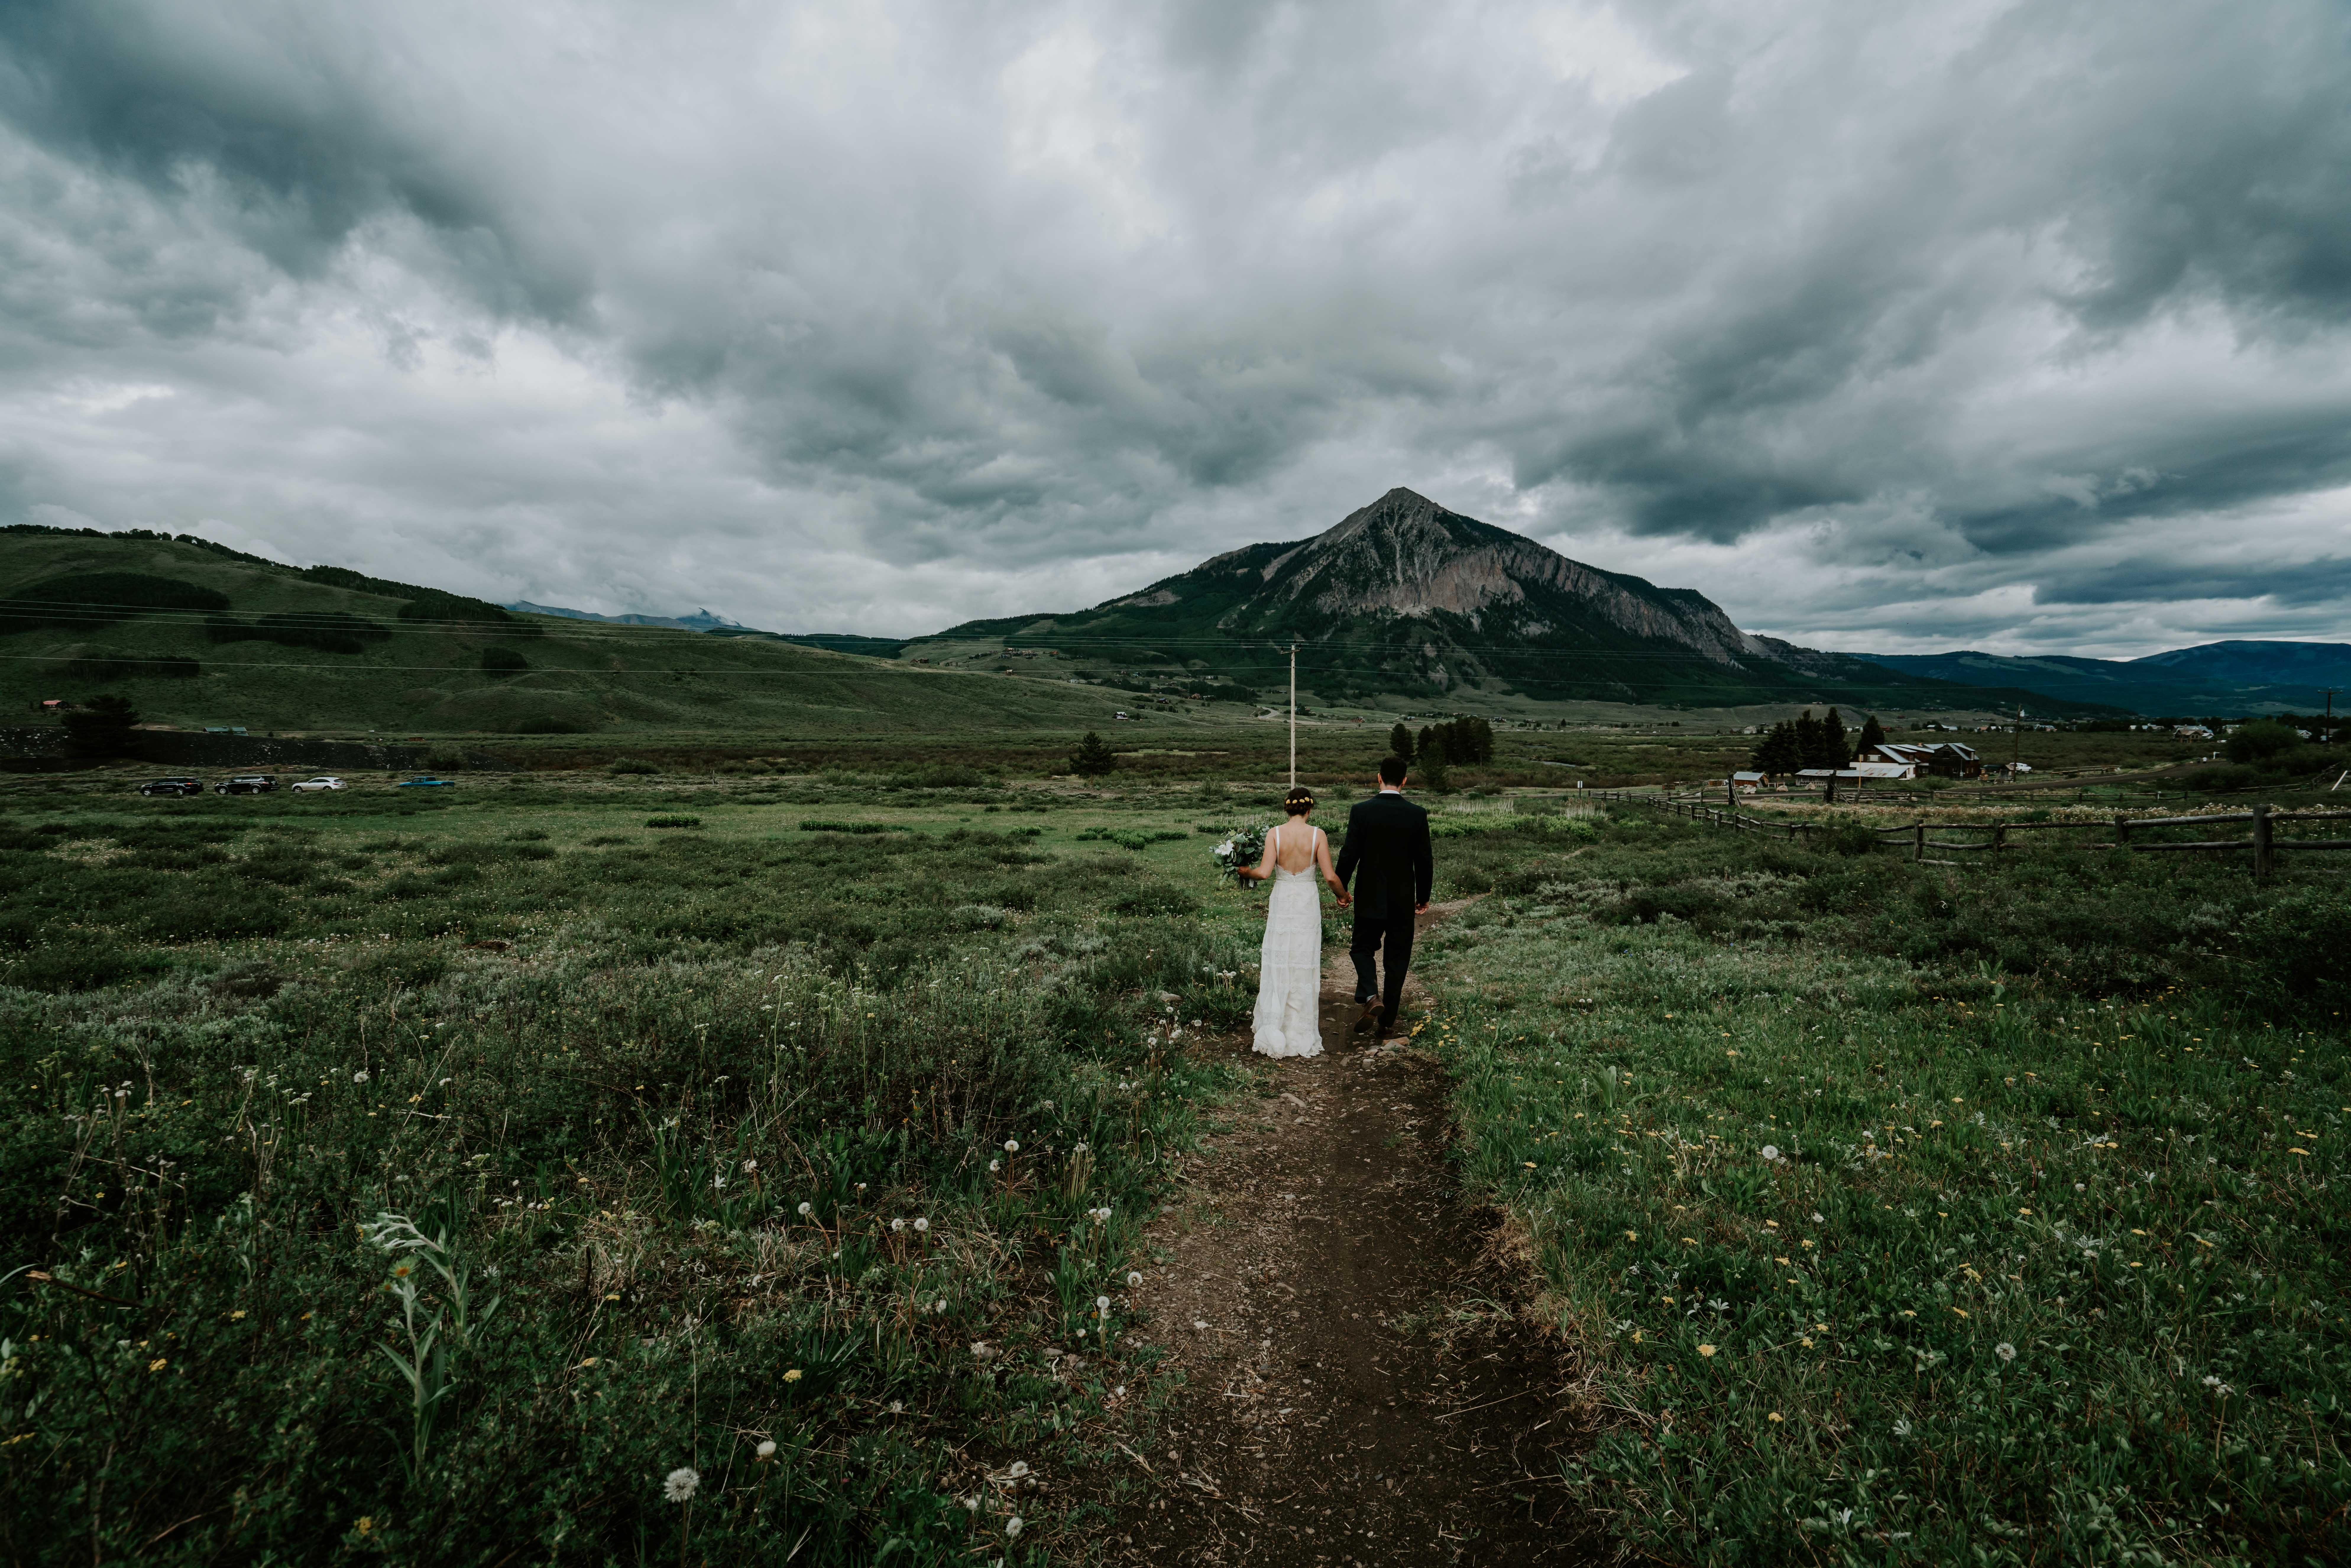 Laura_Alexe_Wedding_Crested_Butte_MegONeillPhotography__180616_92